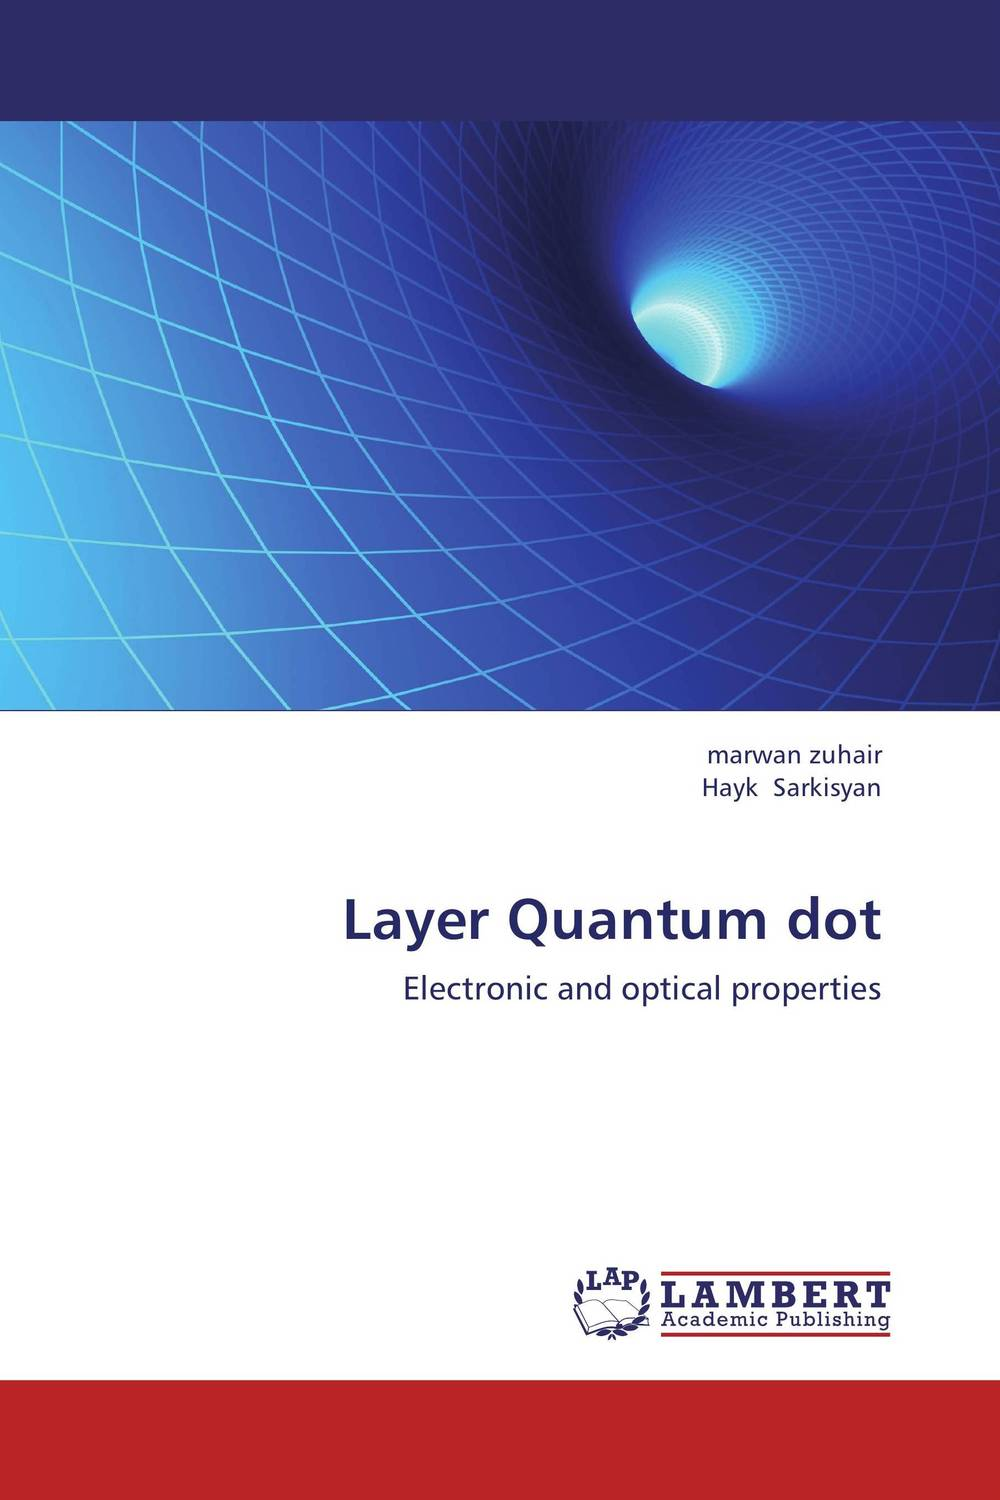 Layer Quantum dot quantum structures